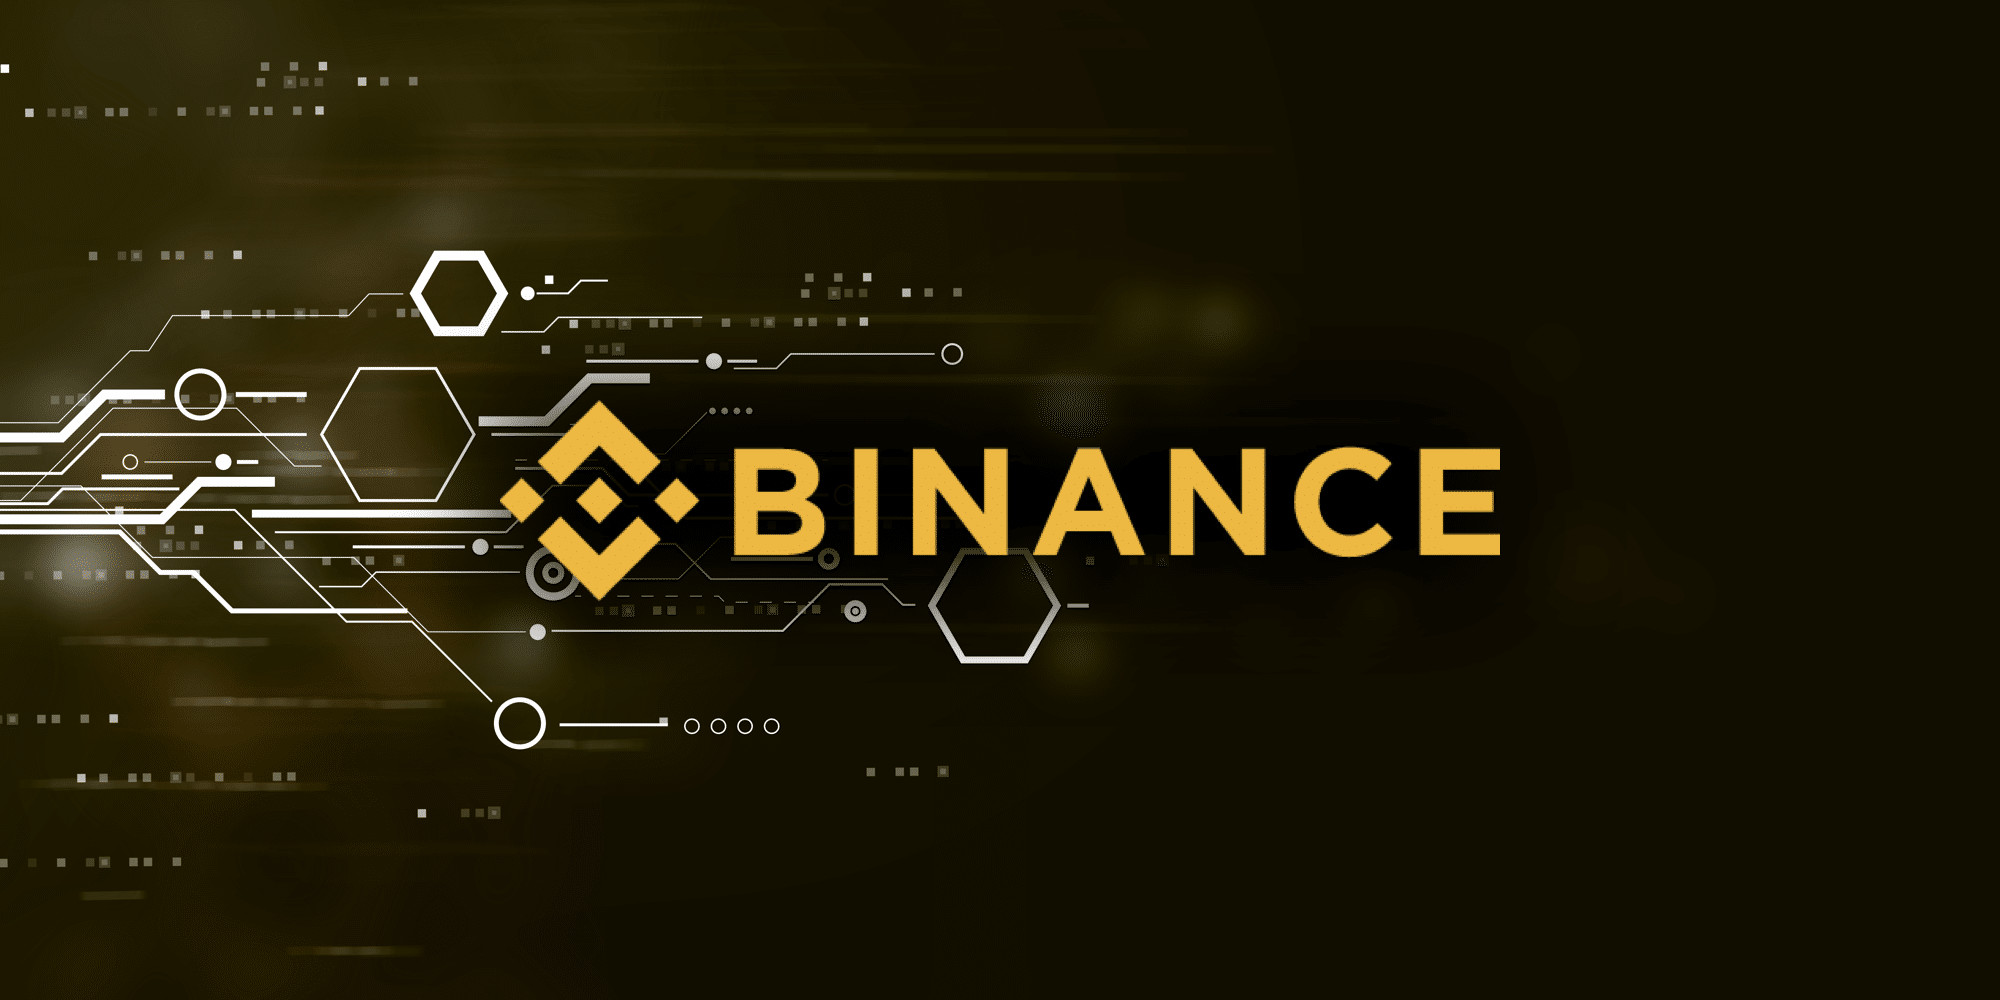 Crypto Exchange Binance Hacked, $40M+ Stolen in Bitcoin